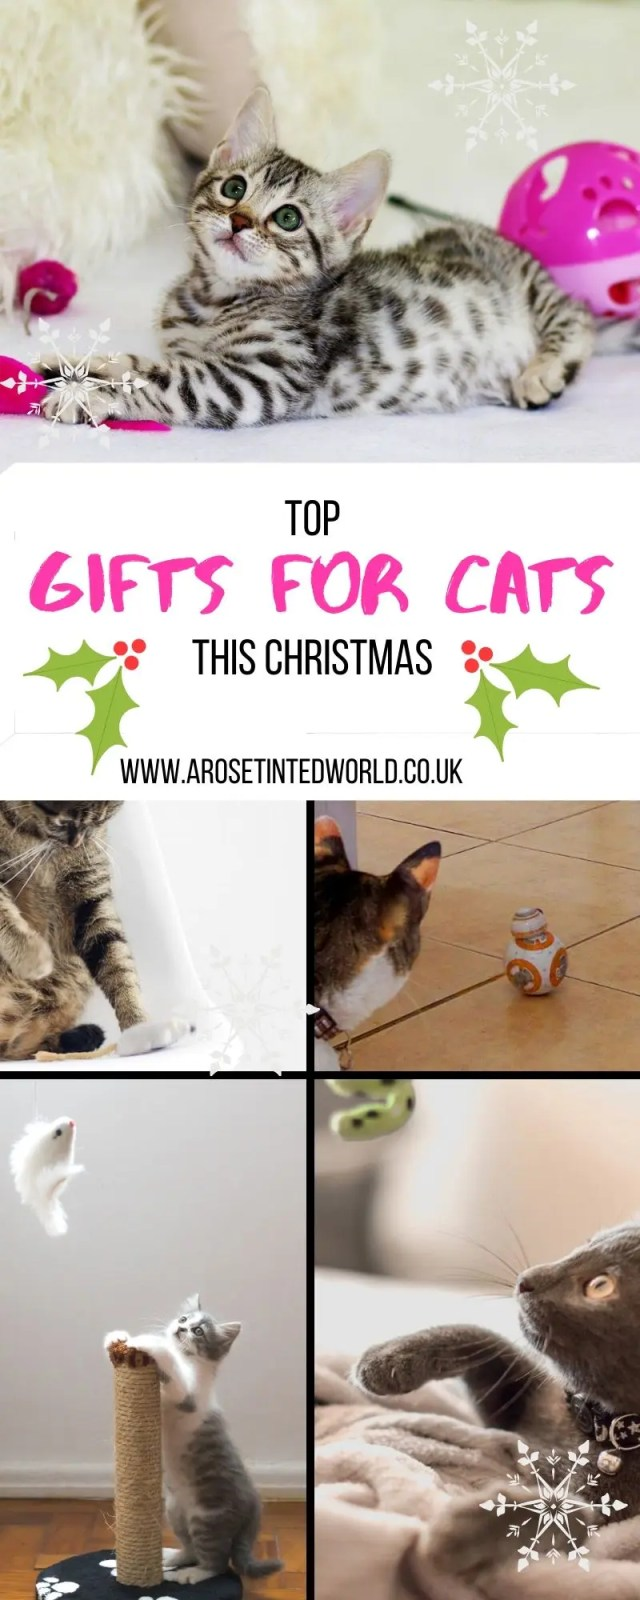 Top Gifts for Your Cat this Christmas - here are some great ideas for cat lovers - what to buy your cat this Xmas - Christmas gifts for cats and cat owners #Christmasgifts #christmasgiftideas #catgifts #catgiftideas #giftsforcats #catlovers #catpresents #catpresentideas #catlovergifts #catloversgiftsideas #catproducts